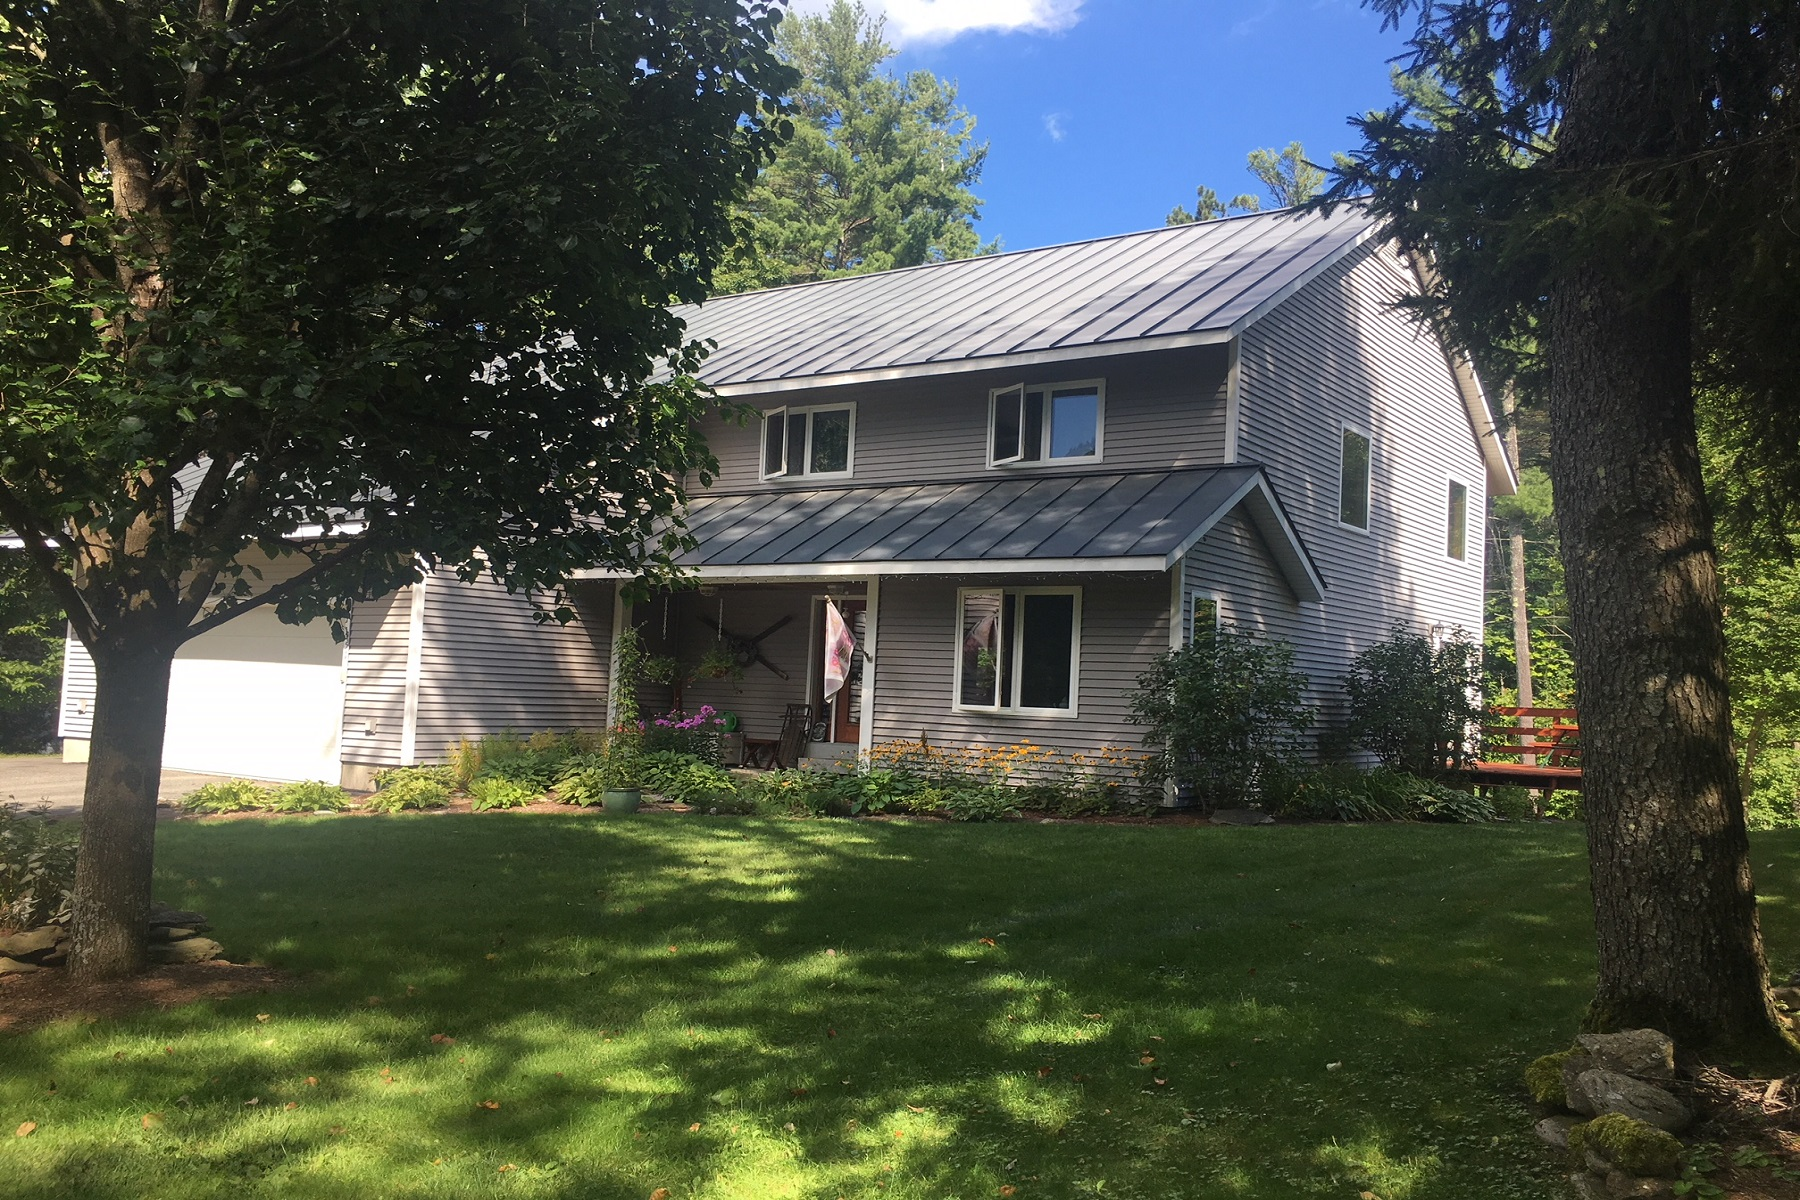 Single Family Home for Sale at Steps from Mt. Ascutney 951 Ski Tow Road West Windsor, Vermont 05089 United States